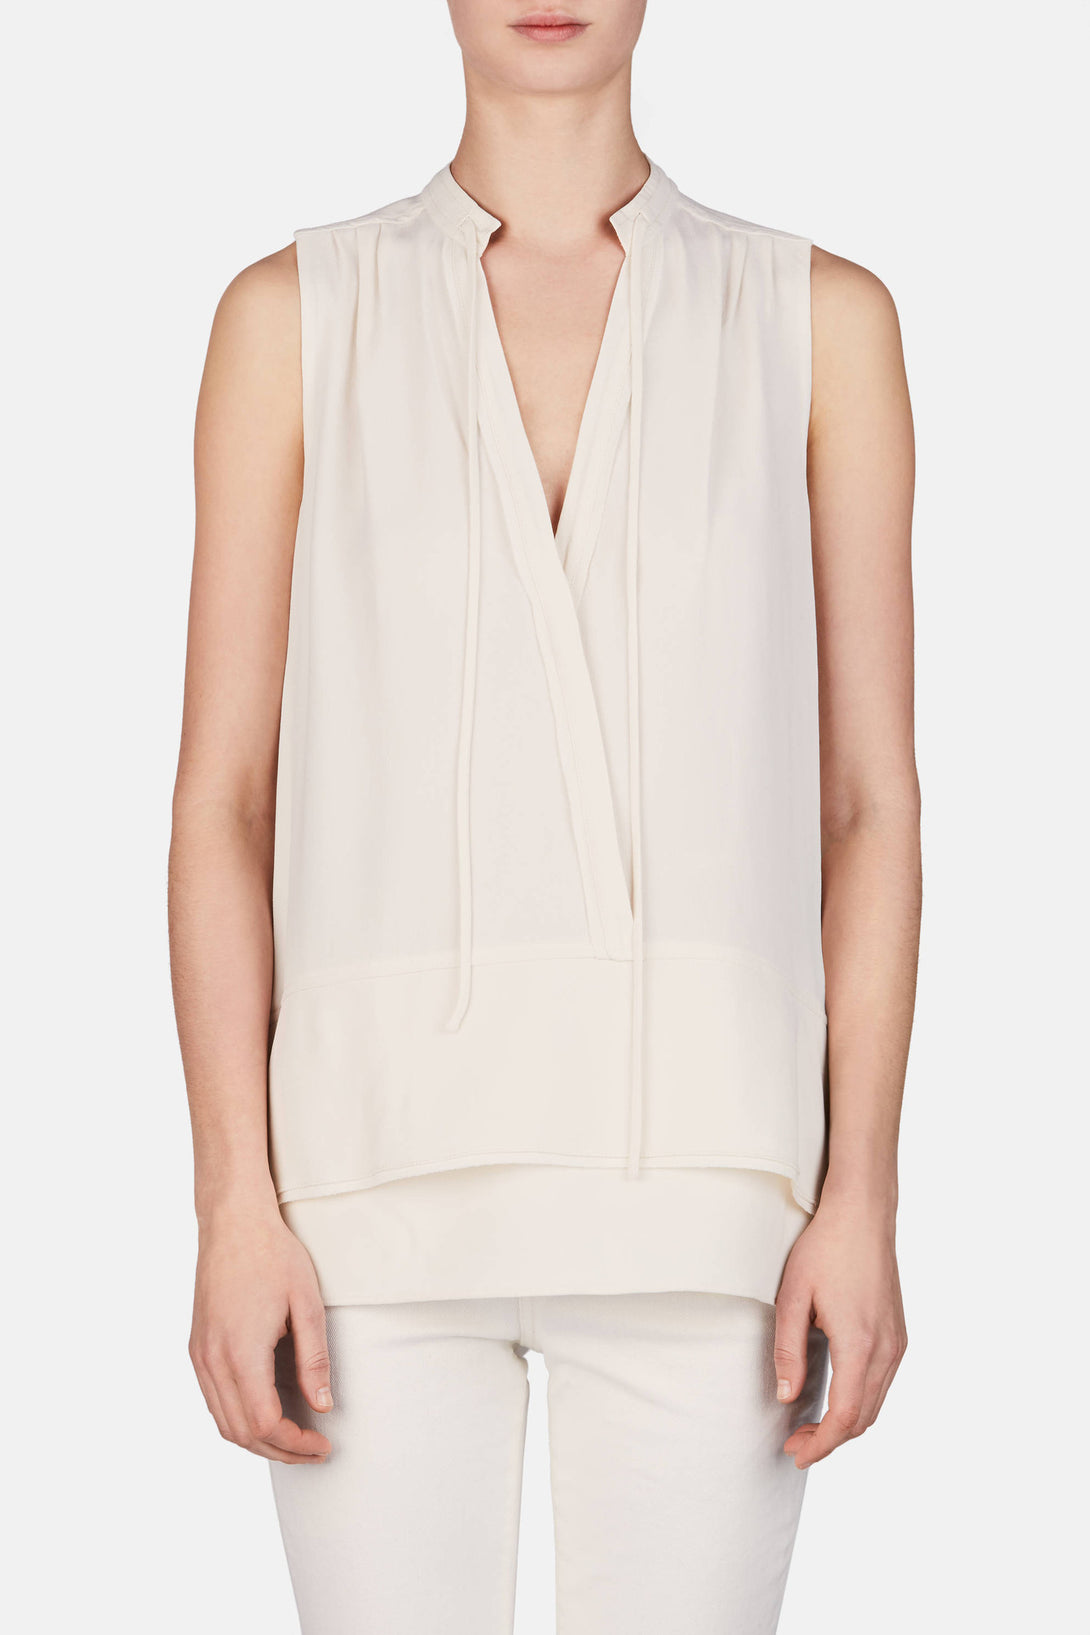 Sleeveless Top w/Ties - Off-White